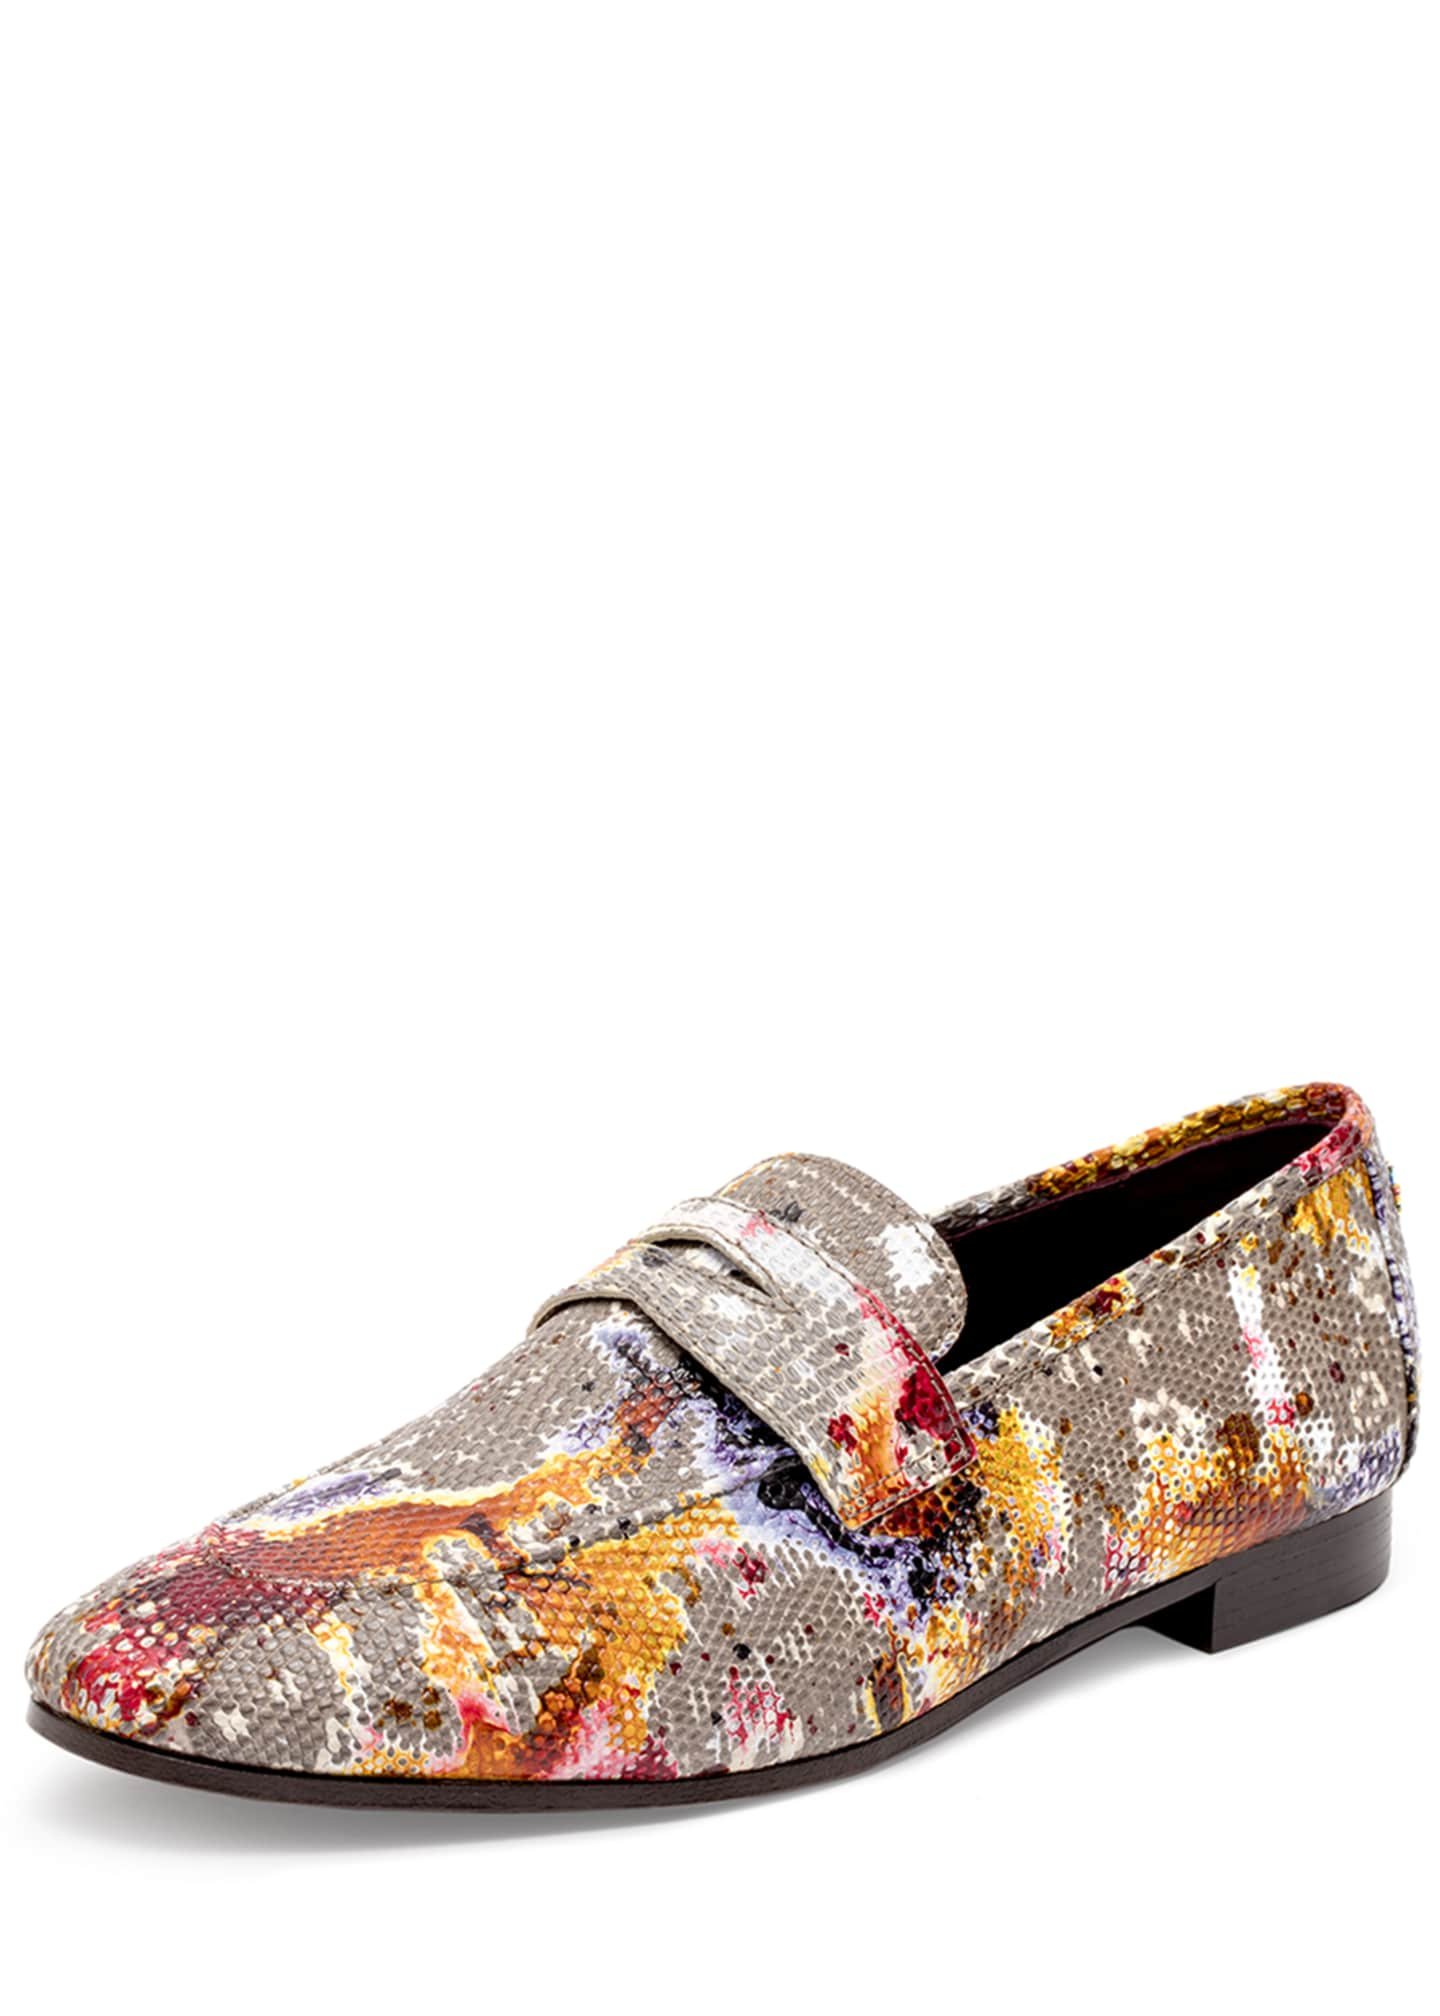 Bougeotte Flaneur Watercolor Lizard Flat Loafers